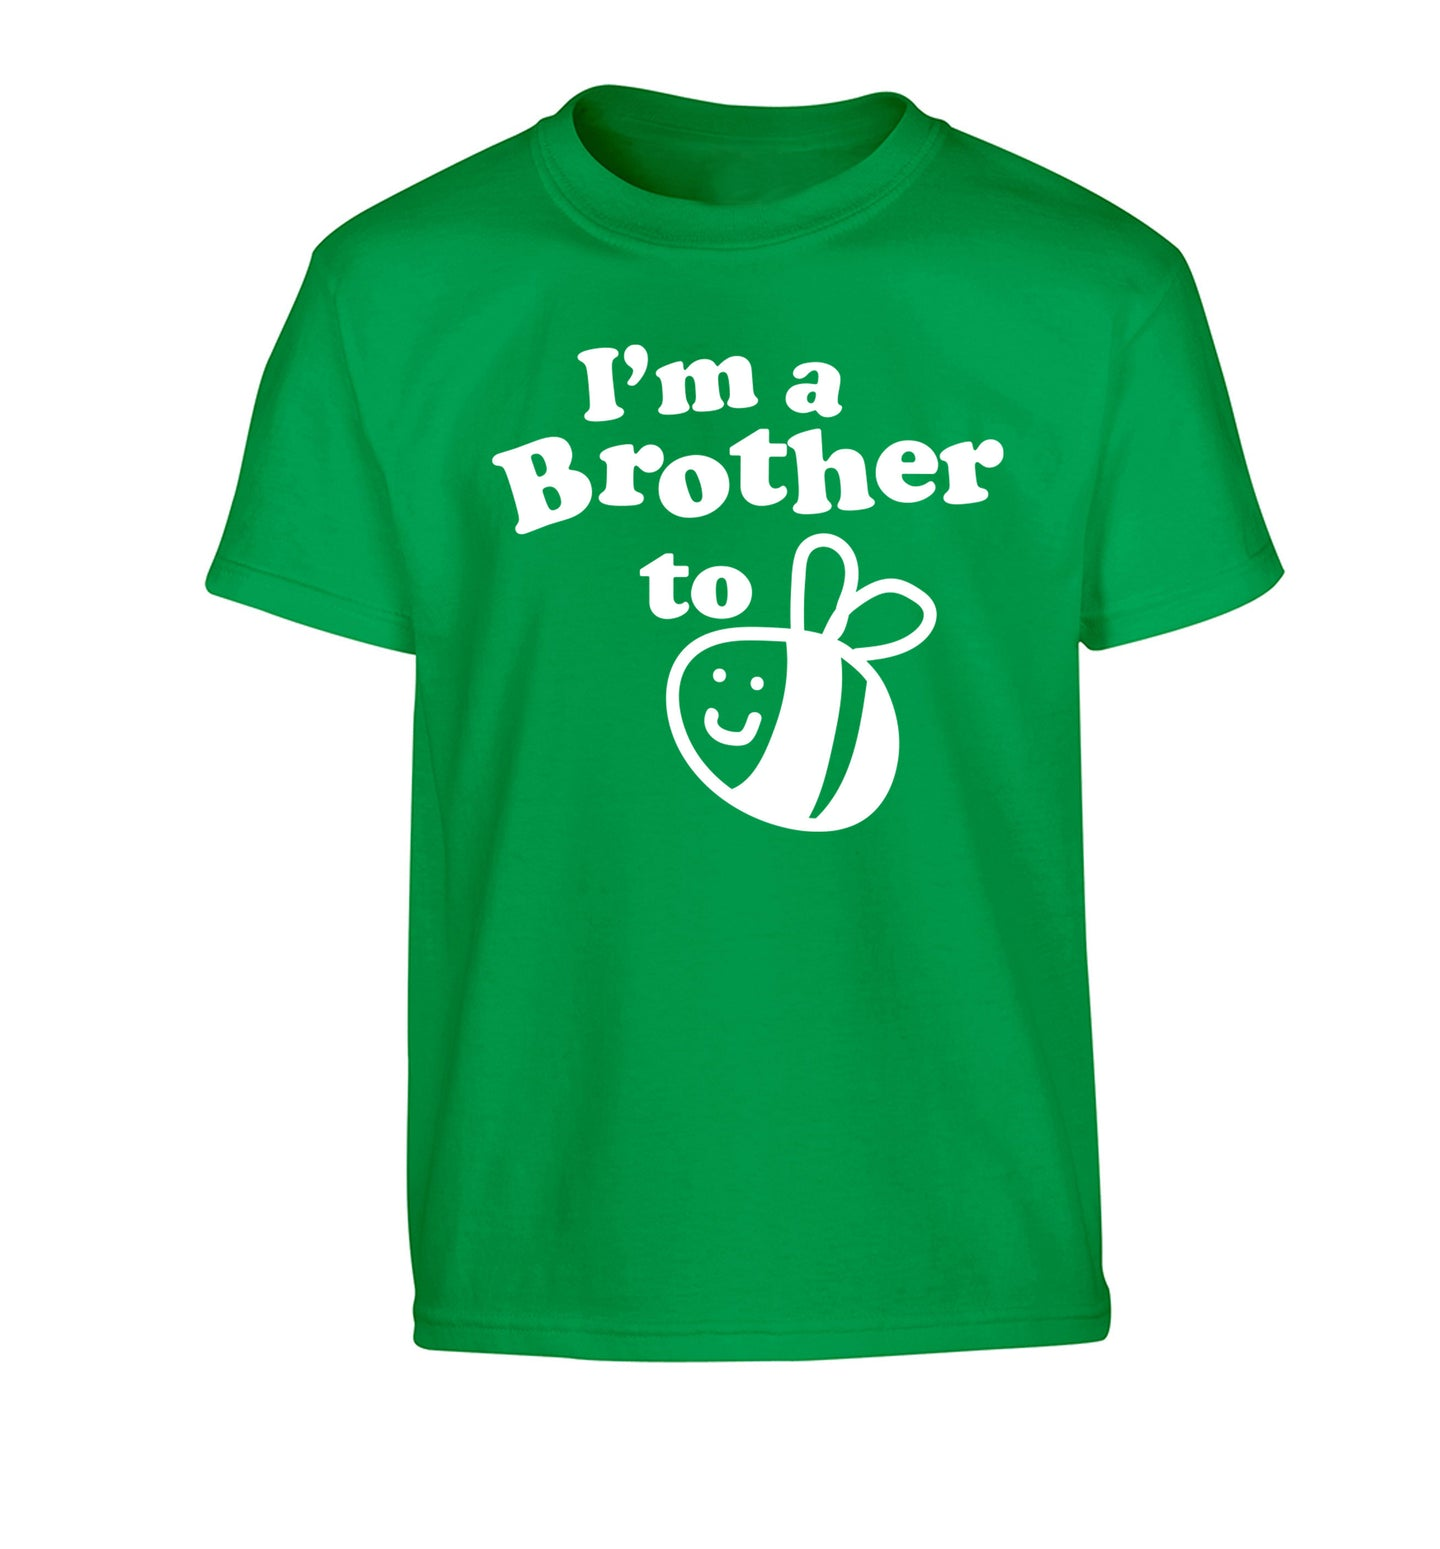 I'm a brother to be Children's green Tshirt 12-14 Years